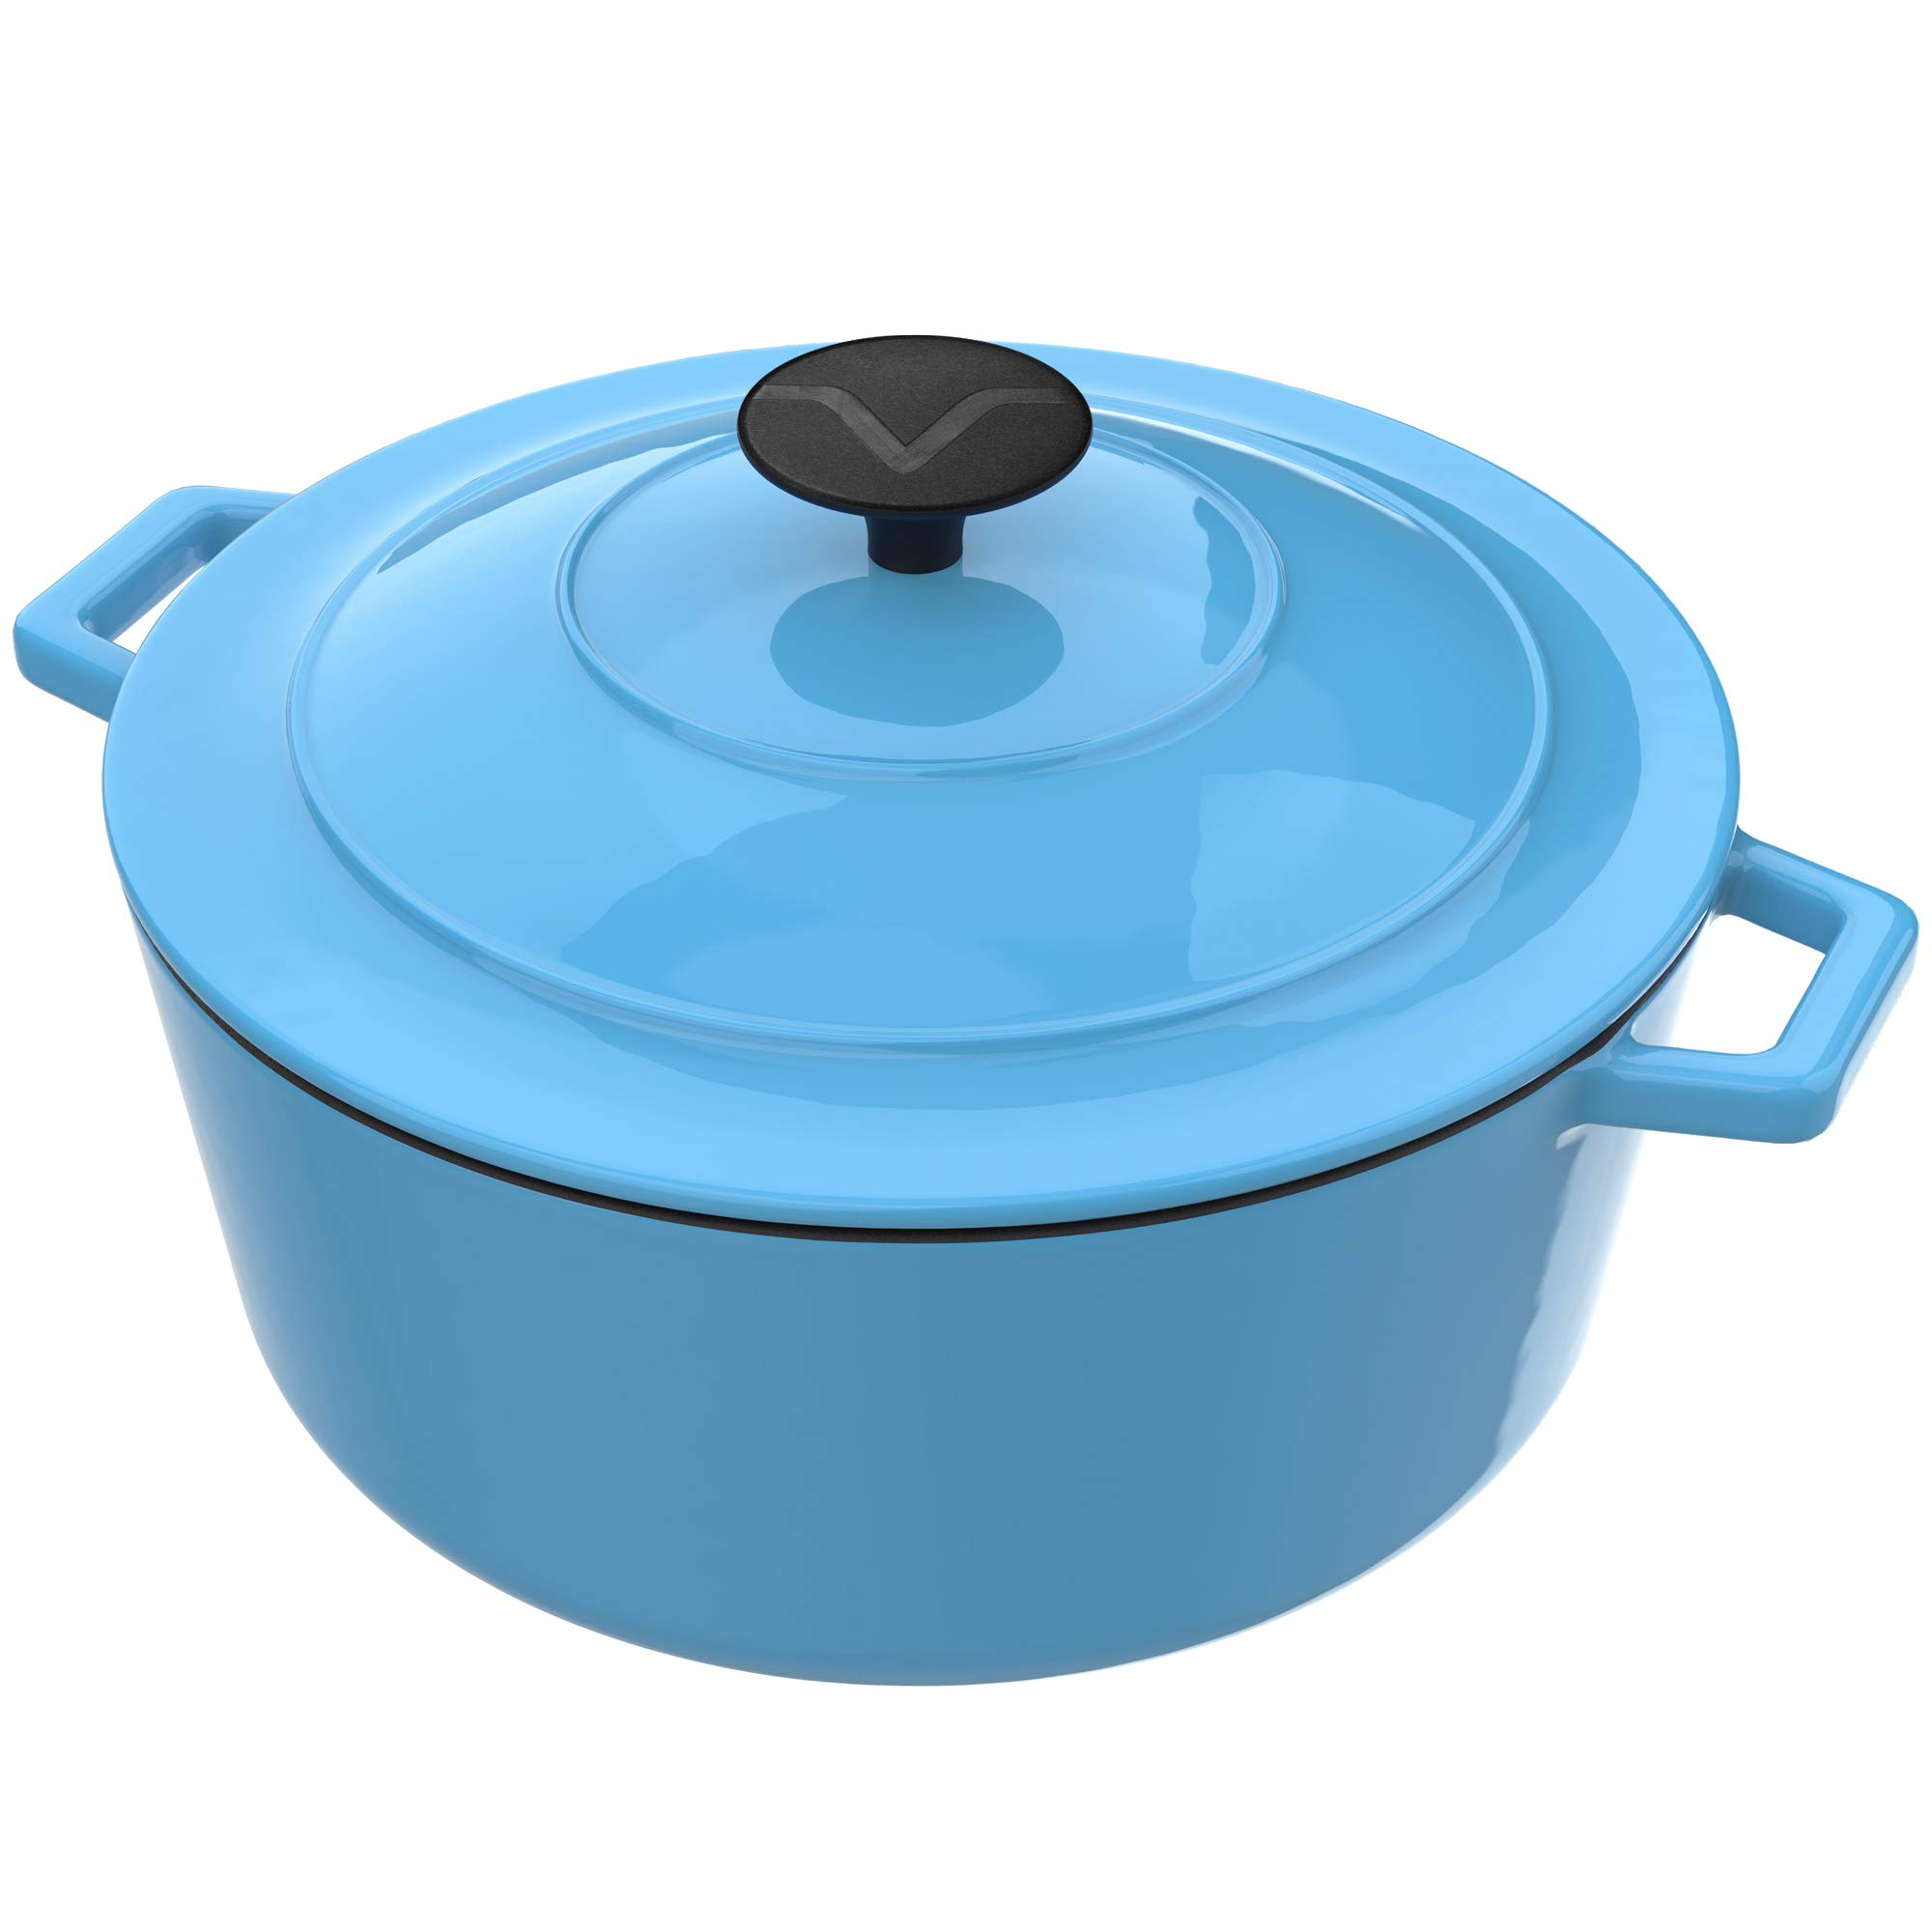 Vremi Enameled Cast Iron Dutch Oven Pot with Lid - 6 Quart Capacity for Preparing Low and Slow Cooking Meals - Electric Gas Stove Top Compatible Cookware - Deep Large - Blue by Vremi